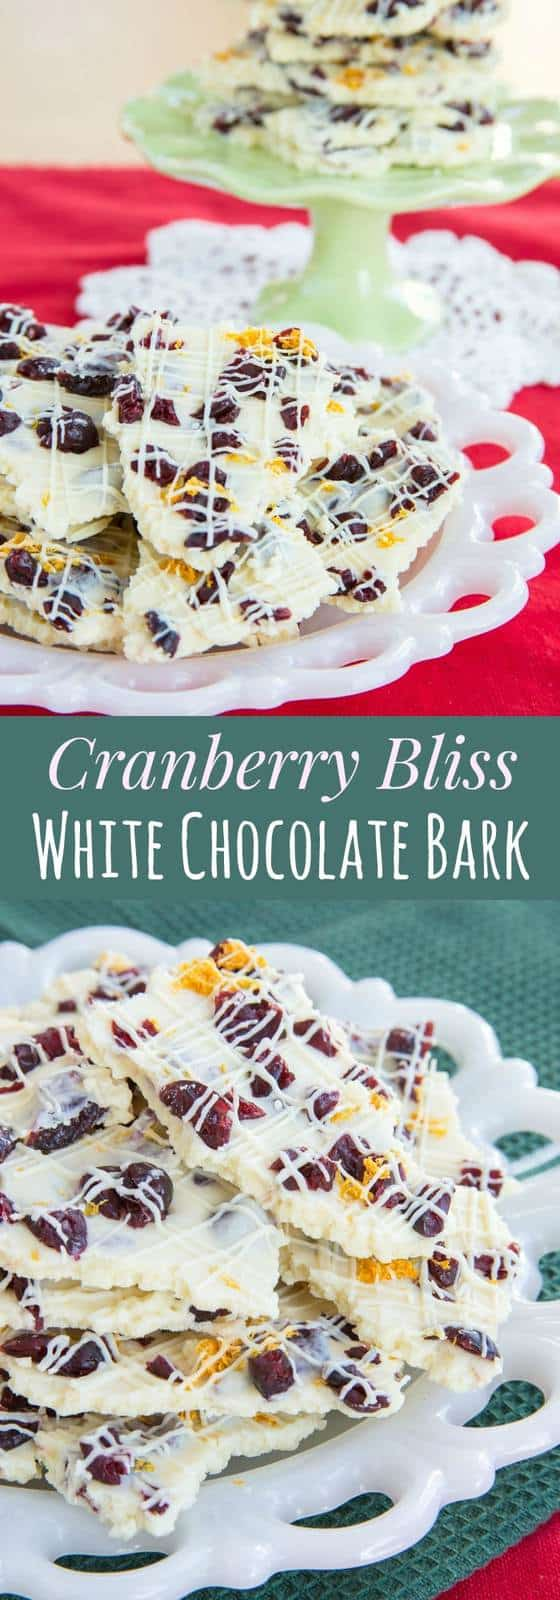 Cranberry Bliss White Chocolate Bark - Cupcakes & Kale Chips